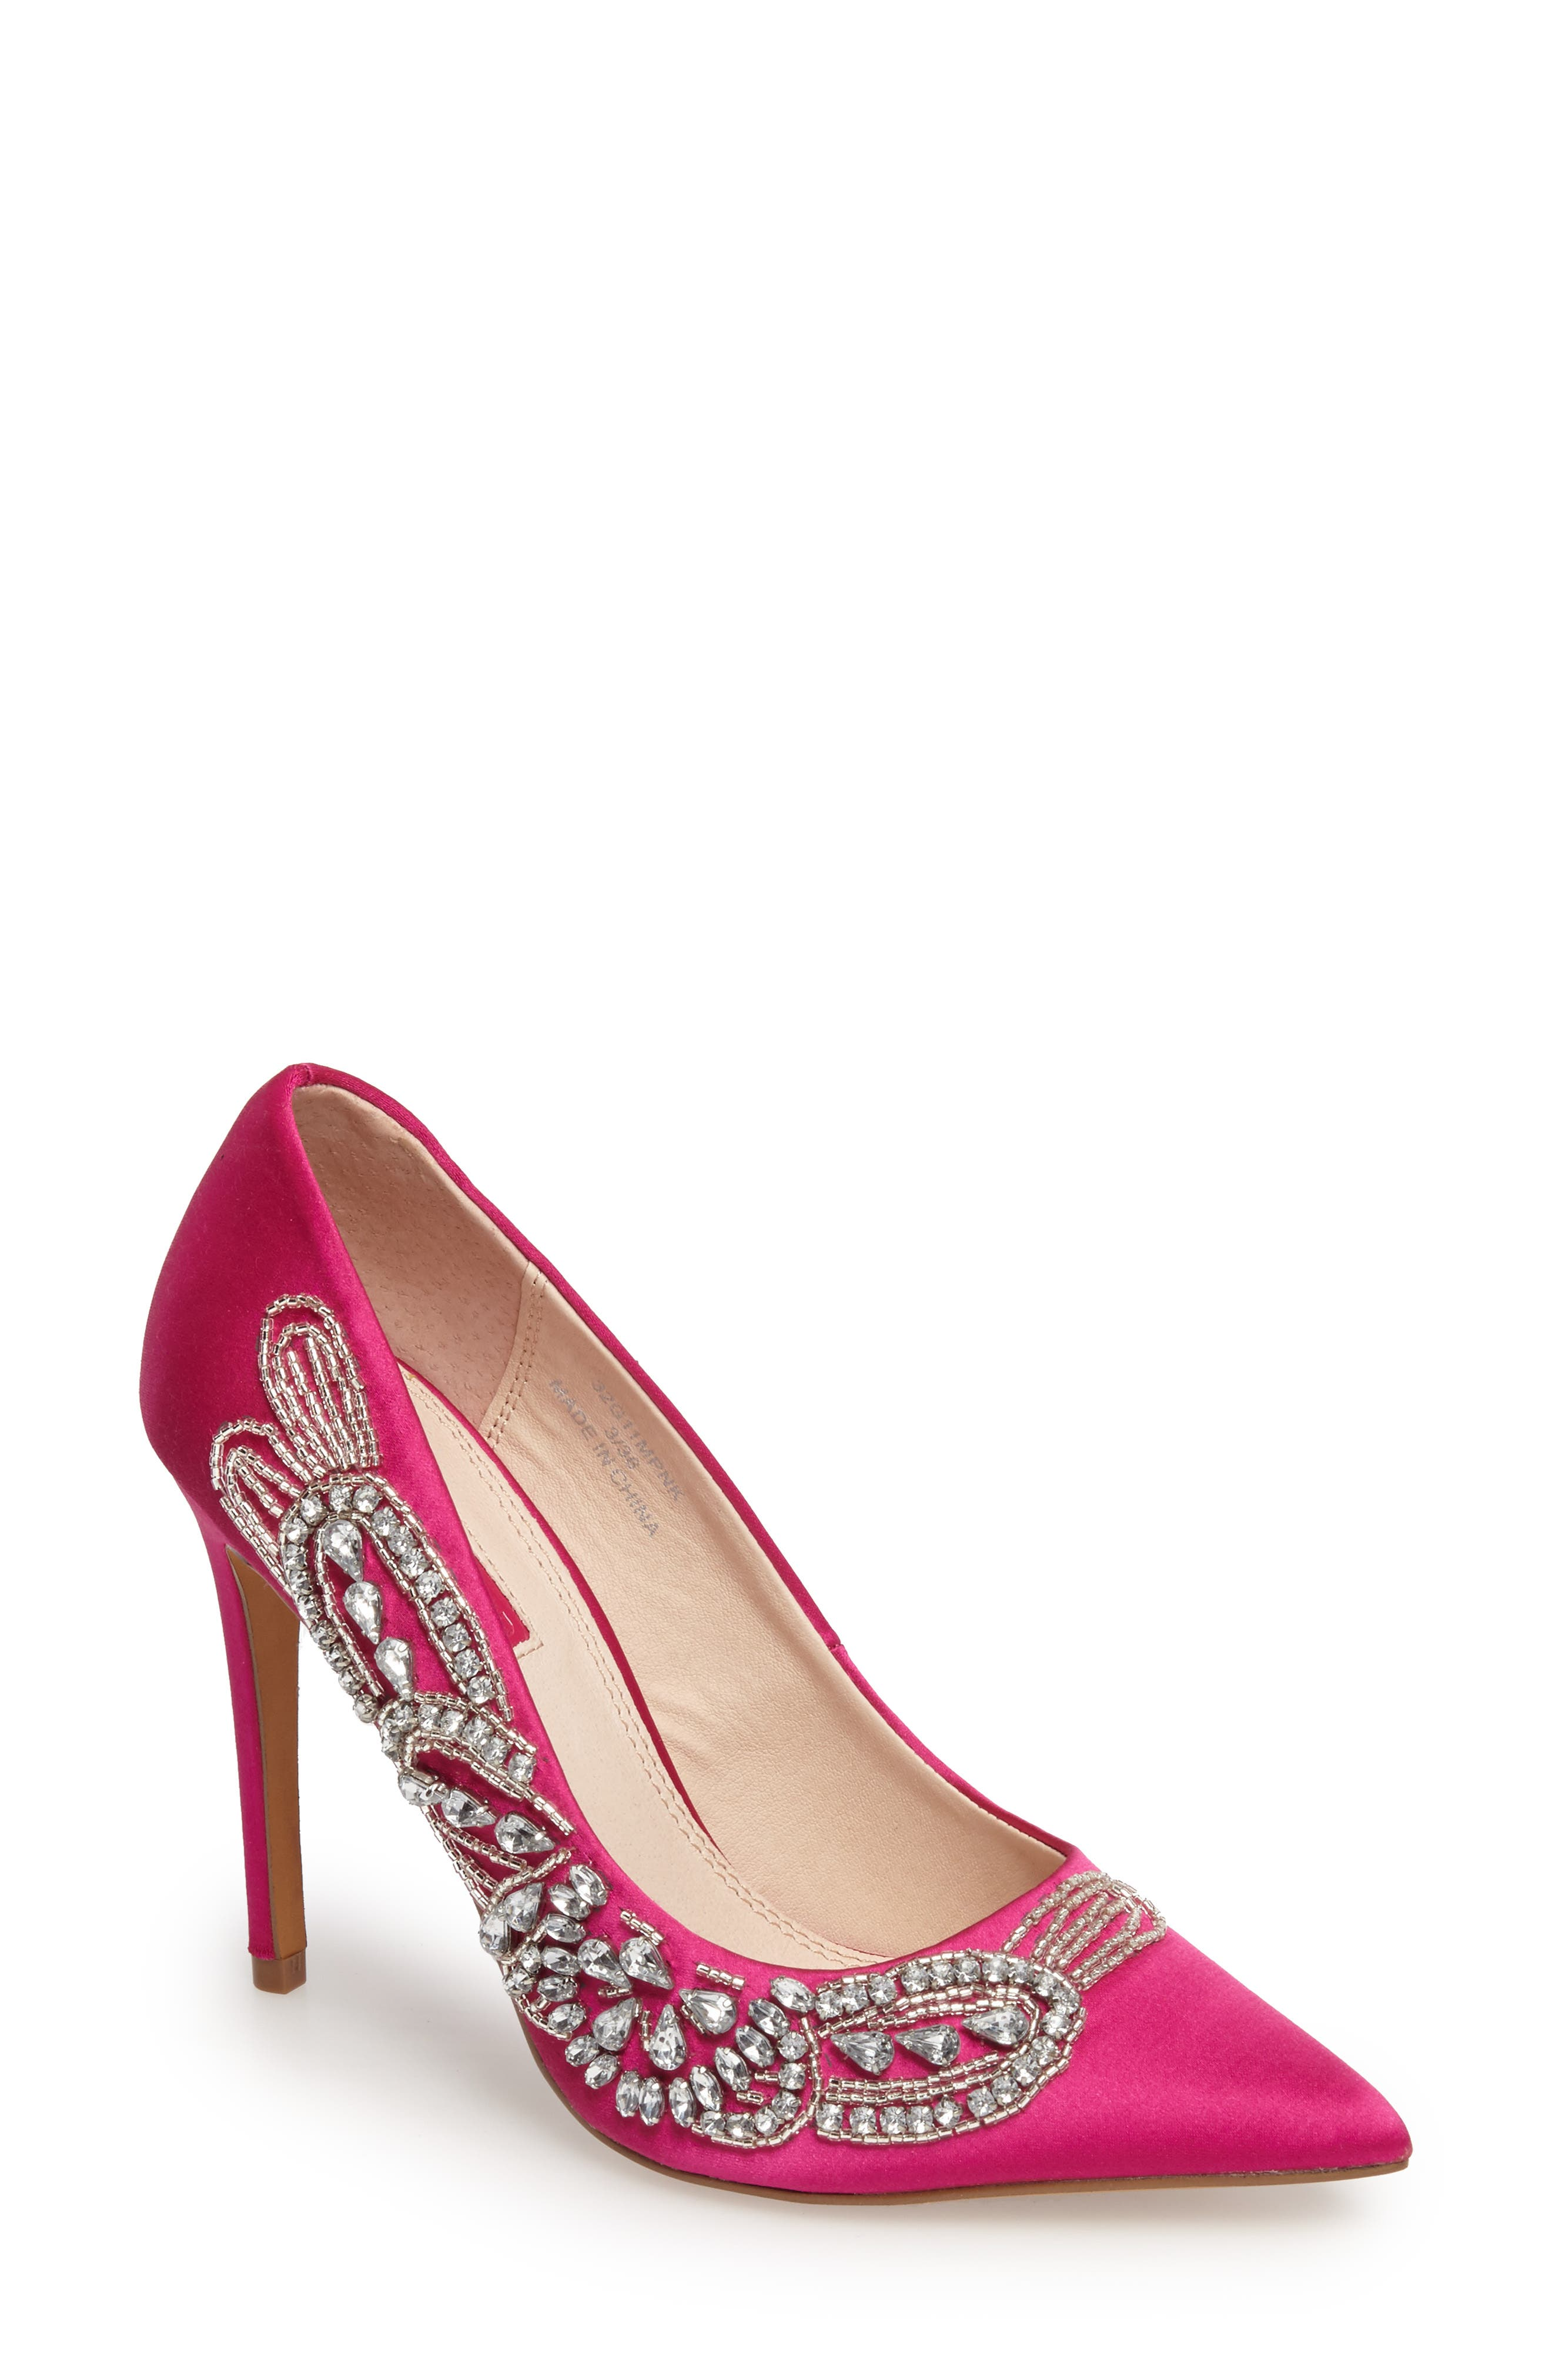 April Embellished Pump,                             Main thumbnail 1, color,                             Pink Multi